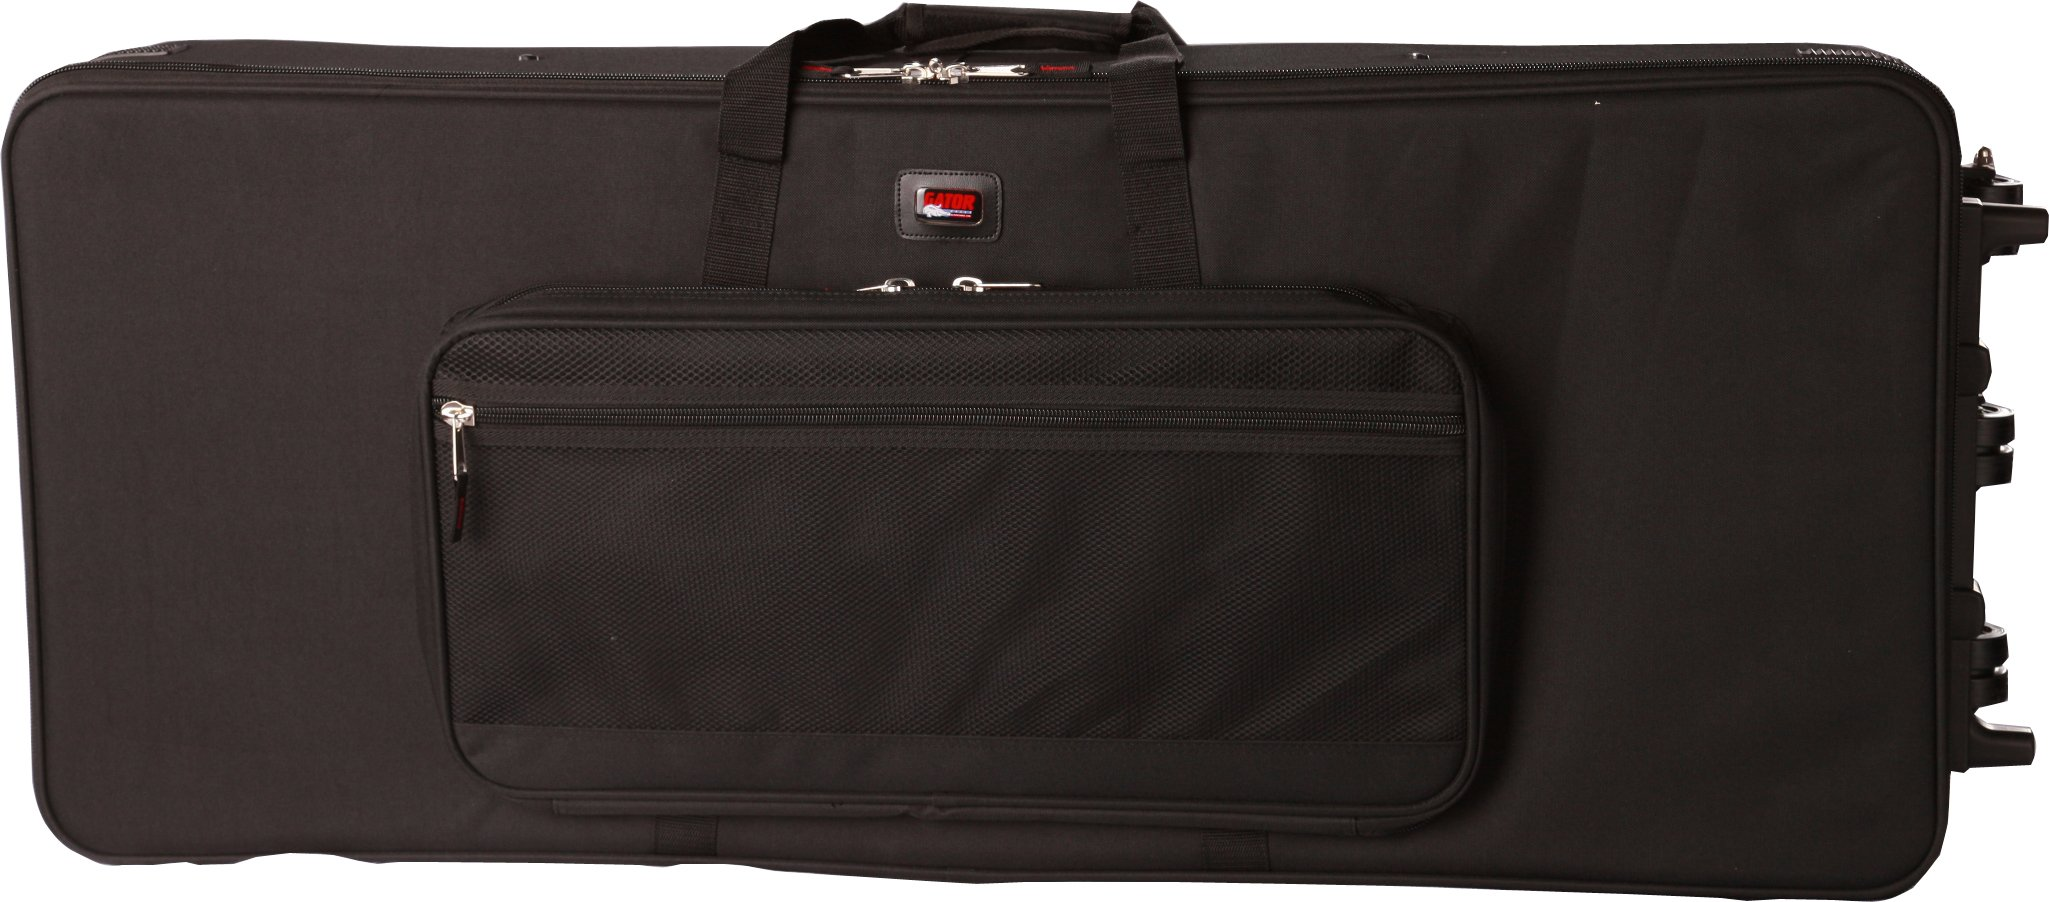 Gator GK88SLIM Slim Line 88-Note Lightweight 54 x 15 x 6 Inches Keyboard Case on Wheels